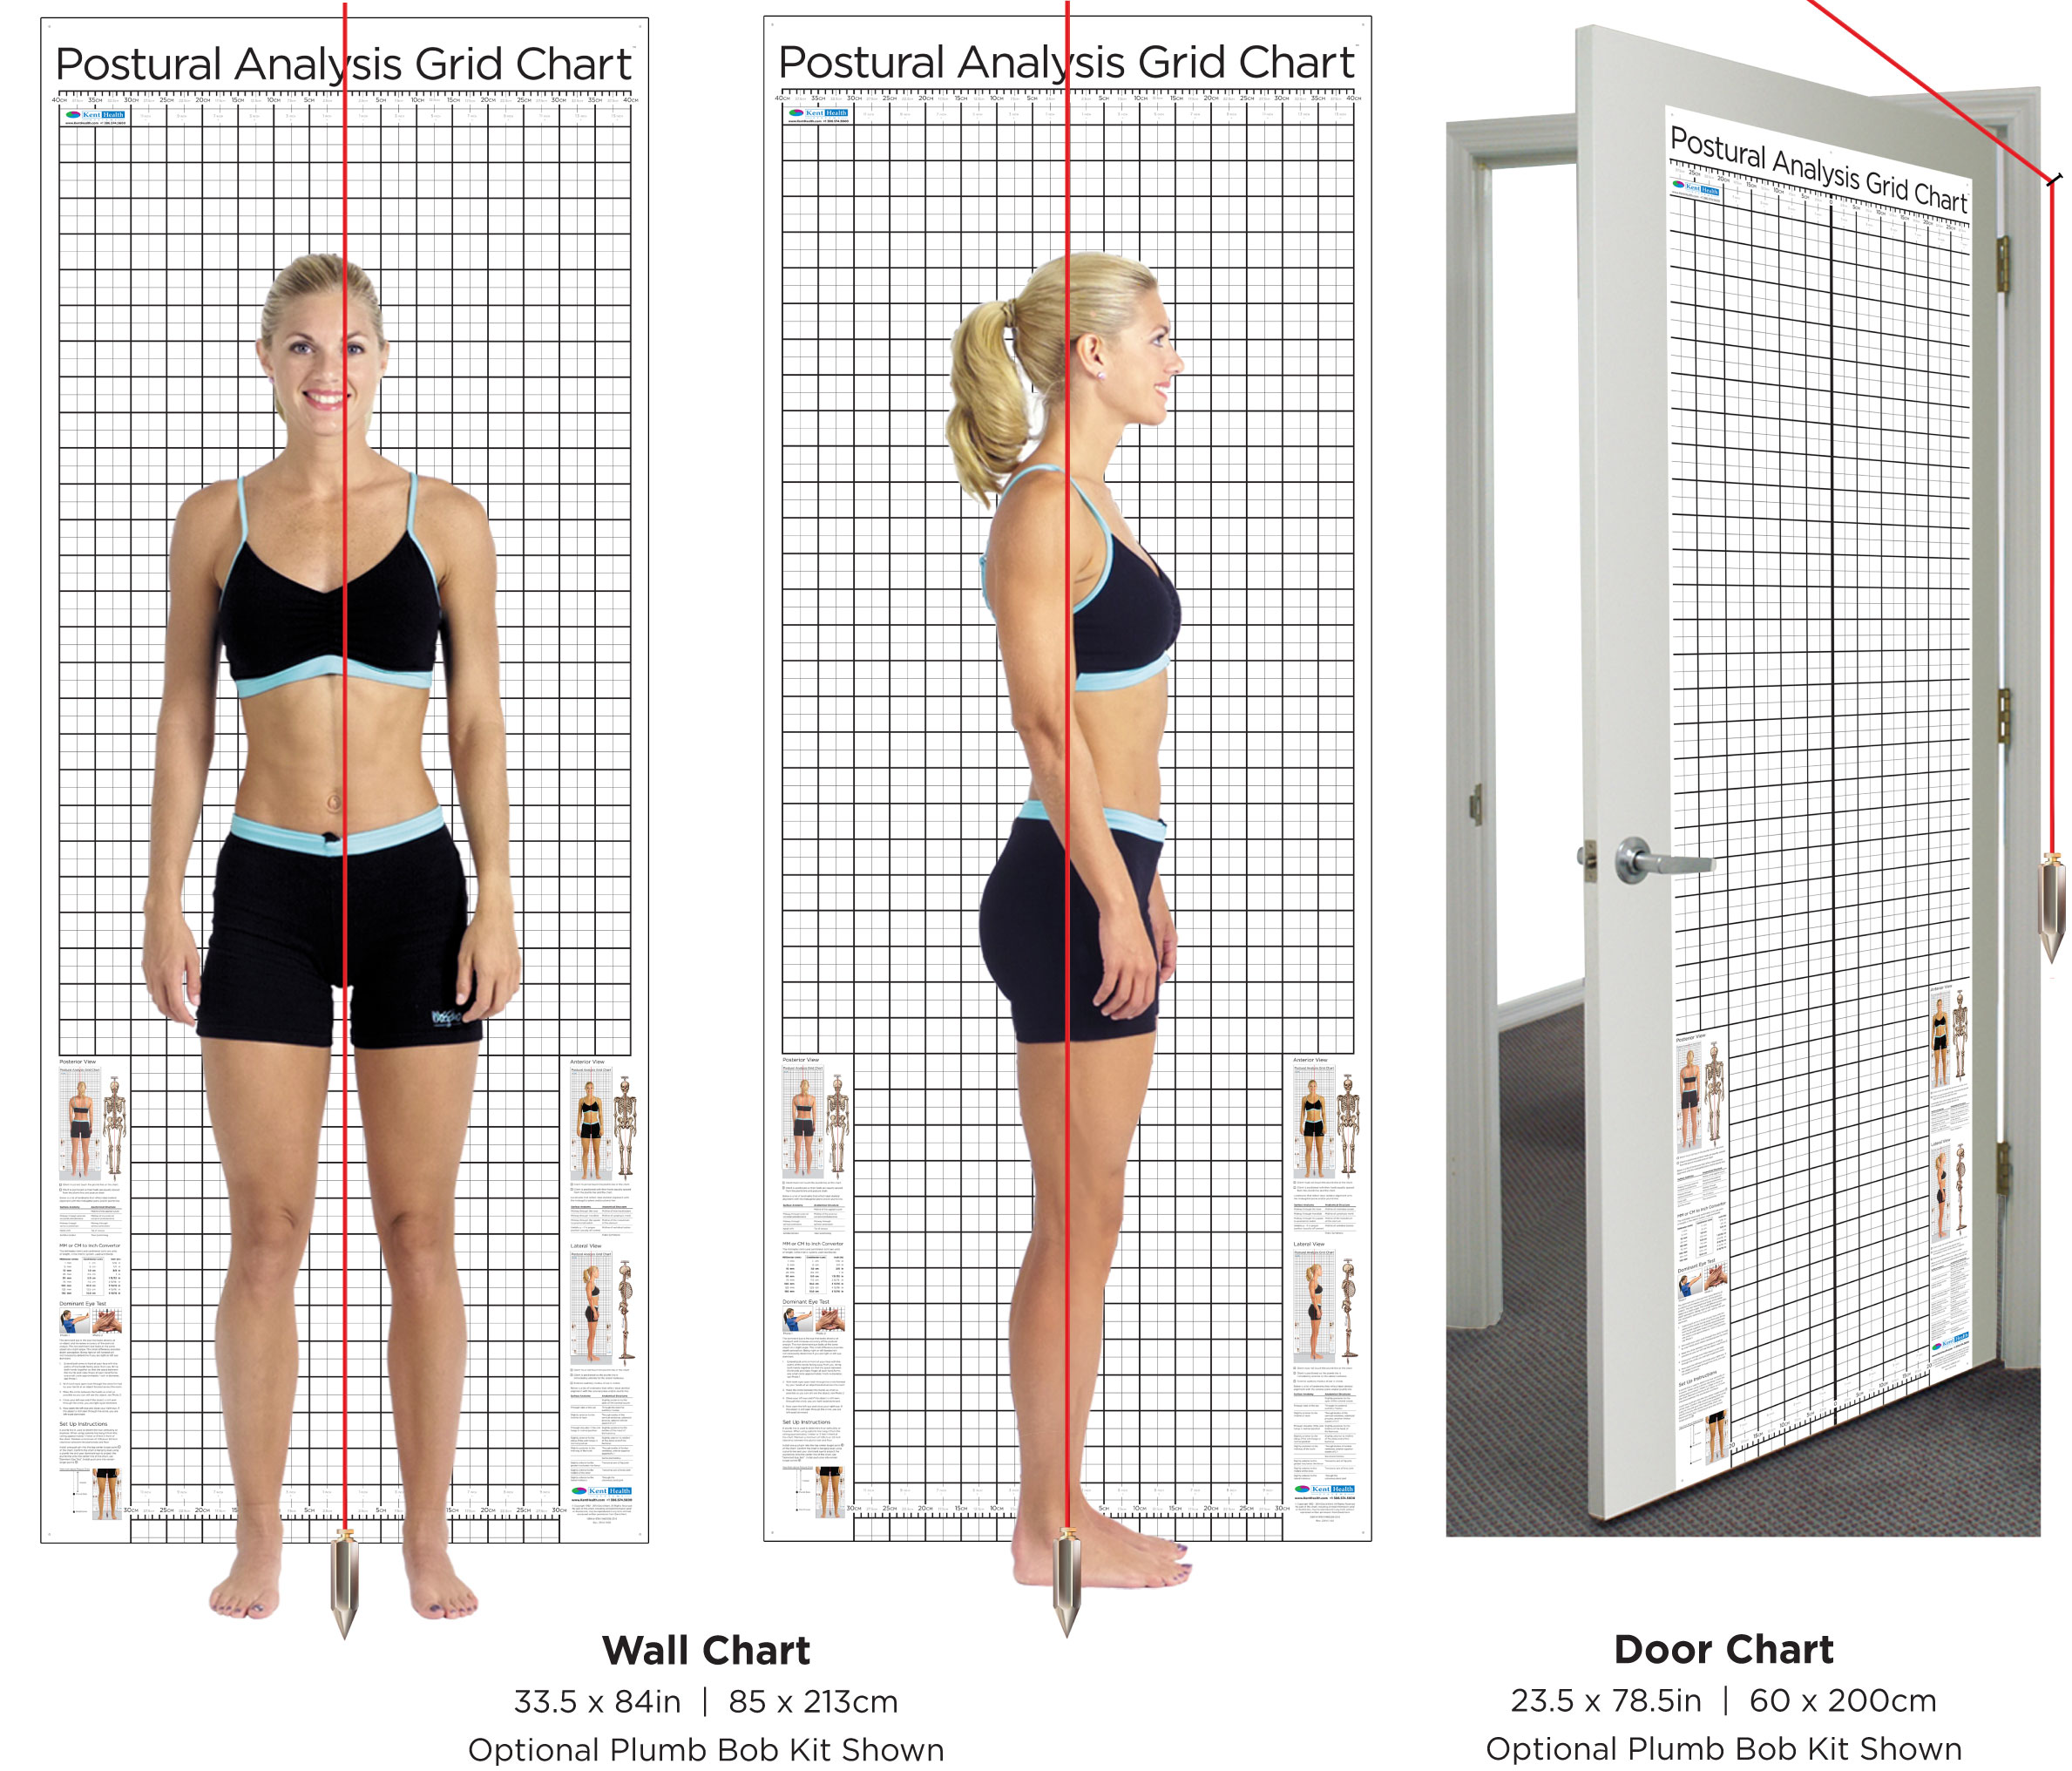 posture-chart-wall-and-door-sizes-with-plumb-bob-option-red.jpg